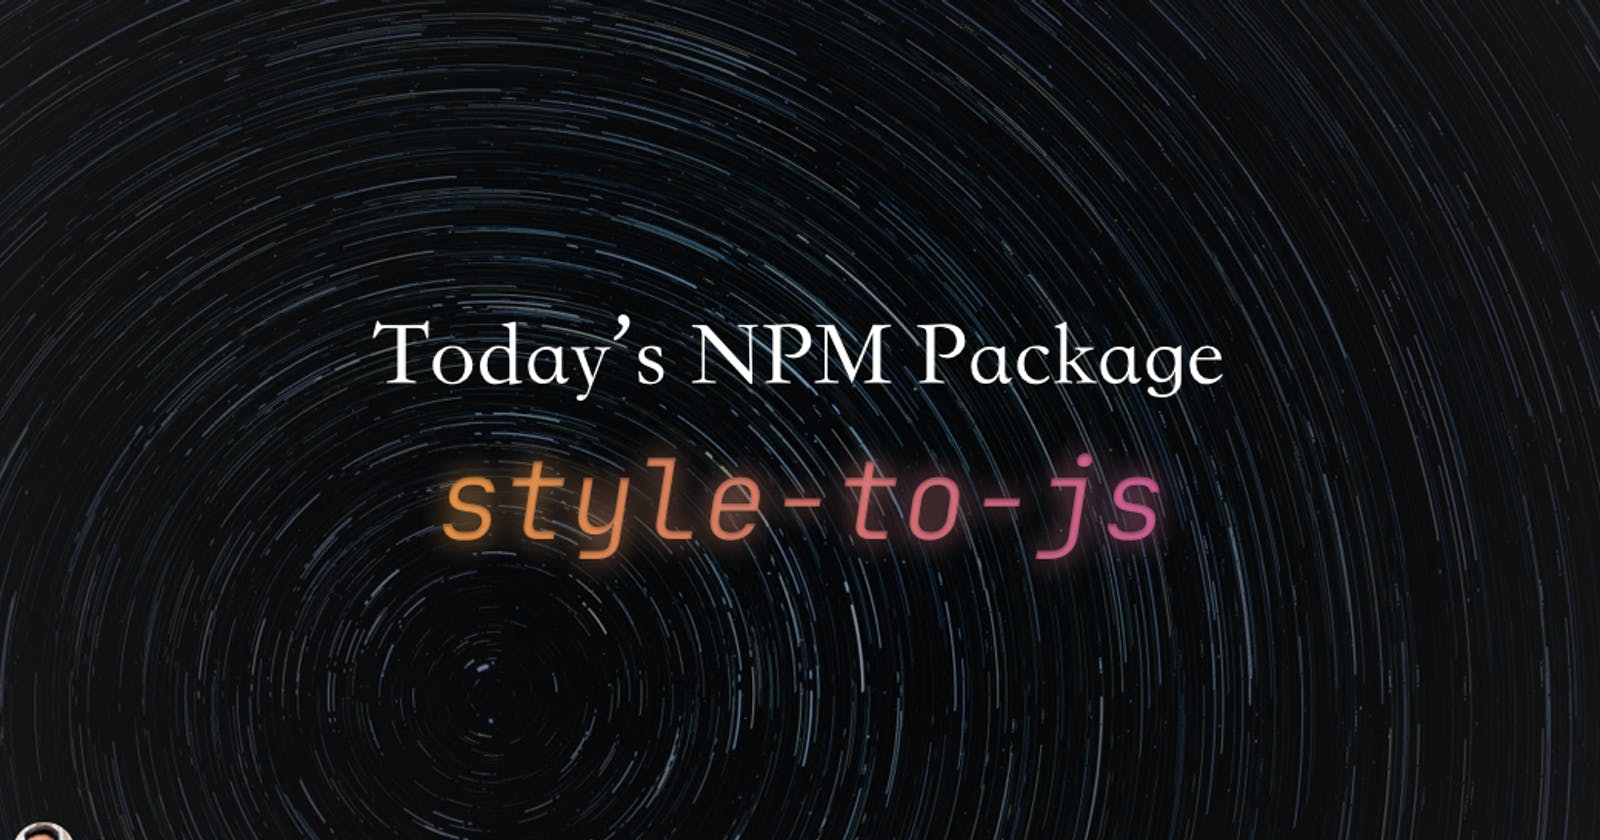 Today's npm package: style-to-js